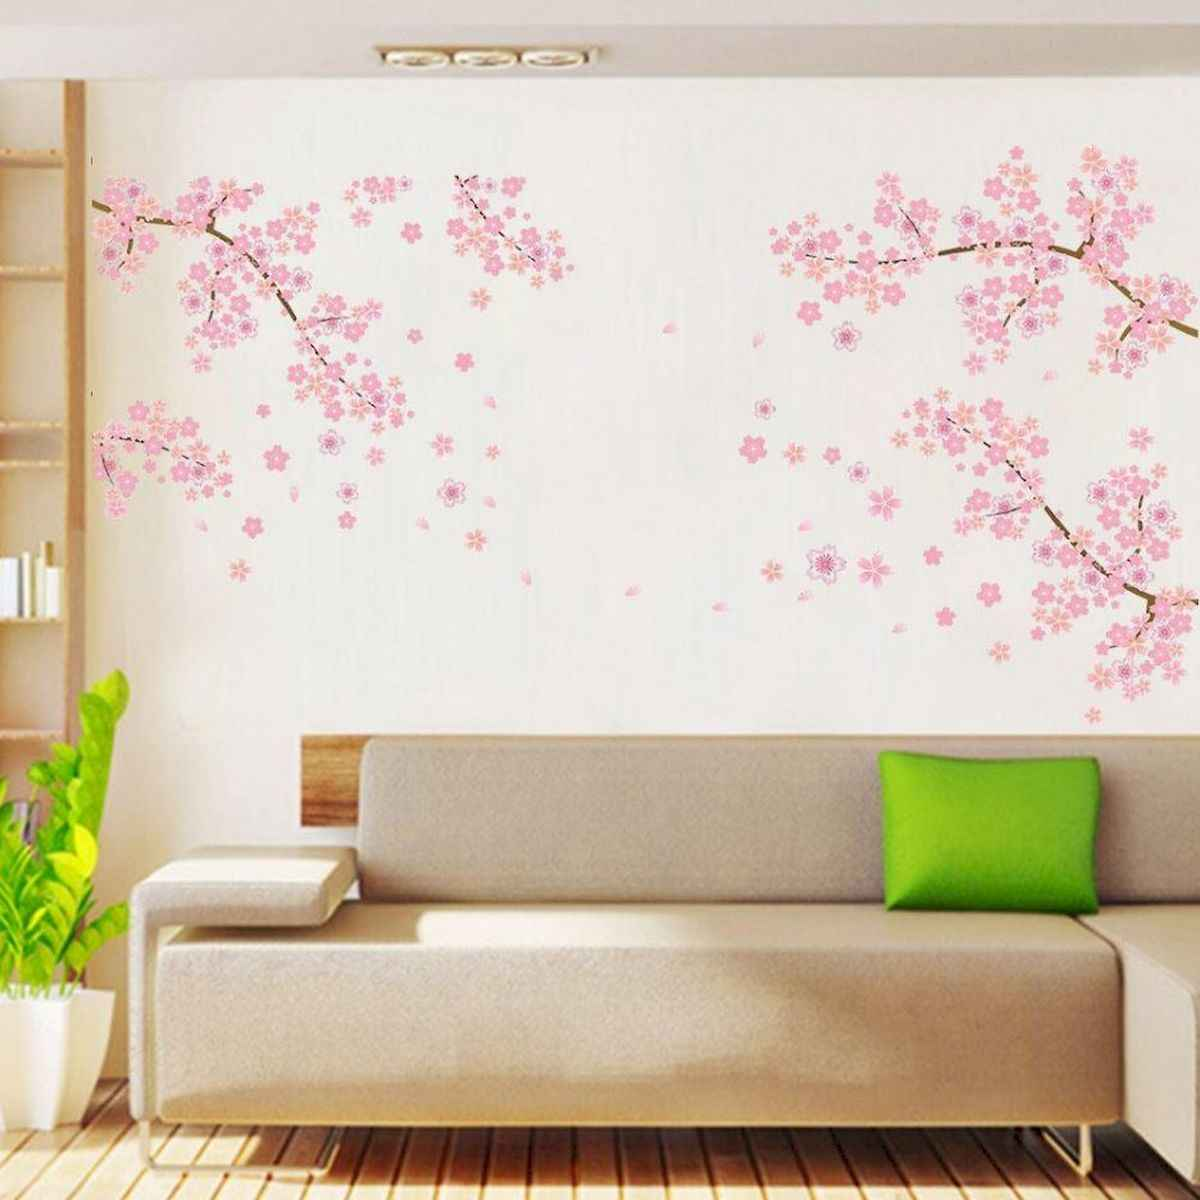 40 Awesome Wall Painting Ideas For Home (13)